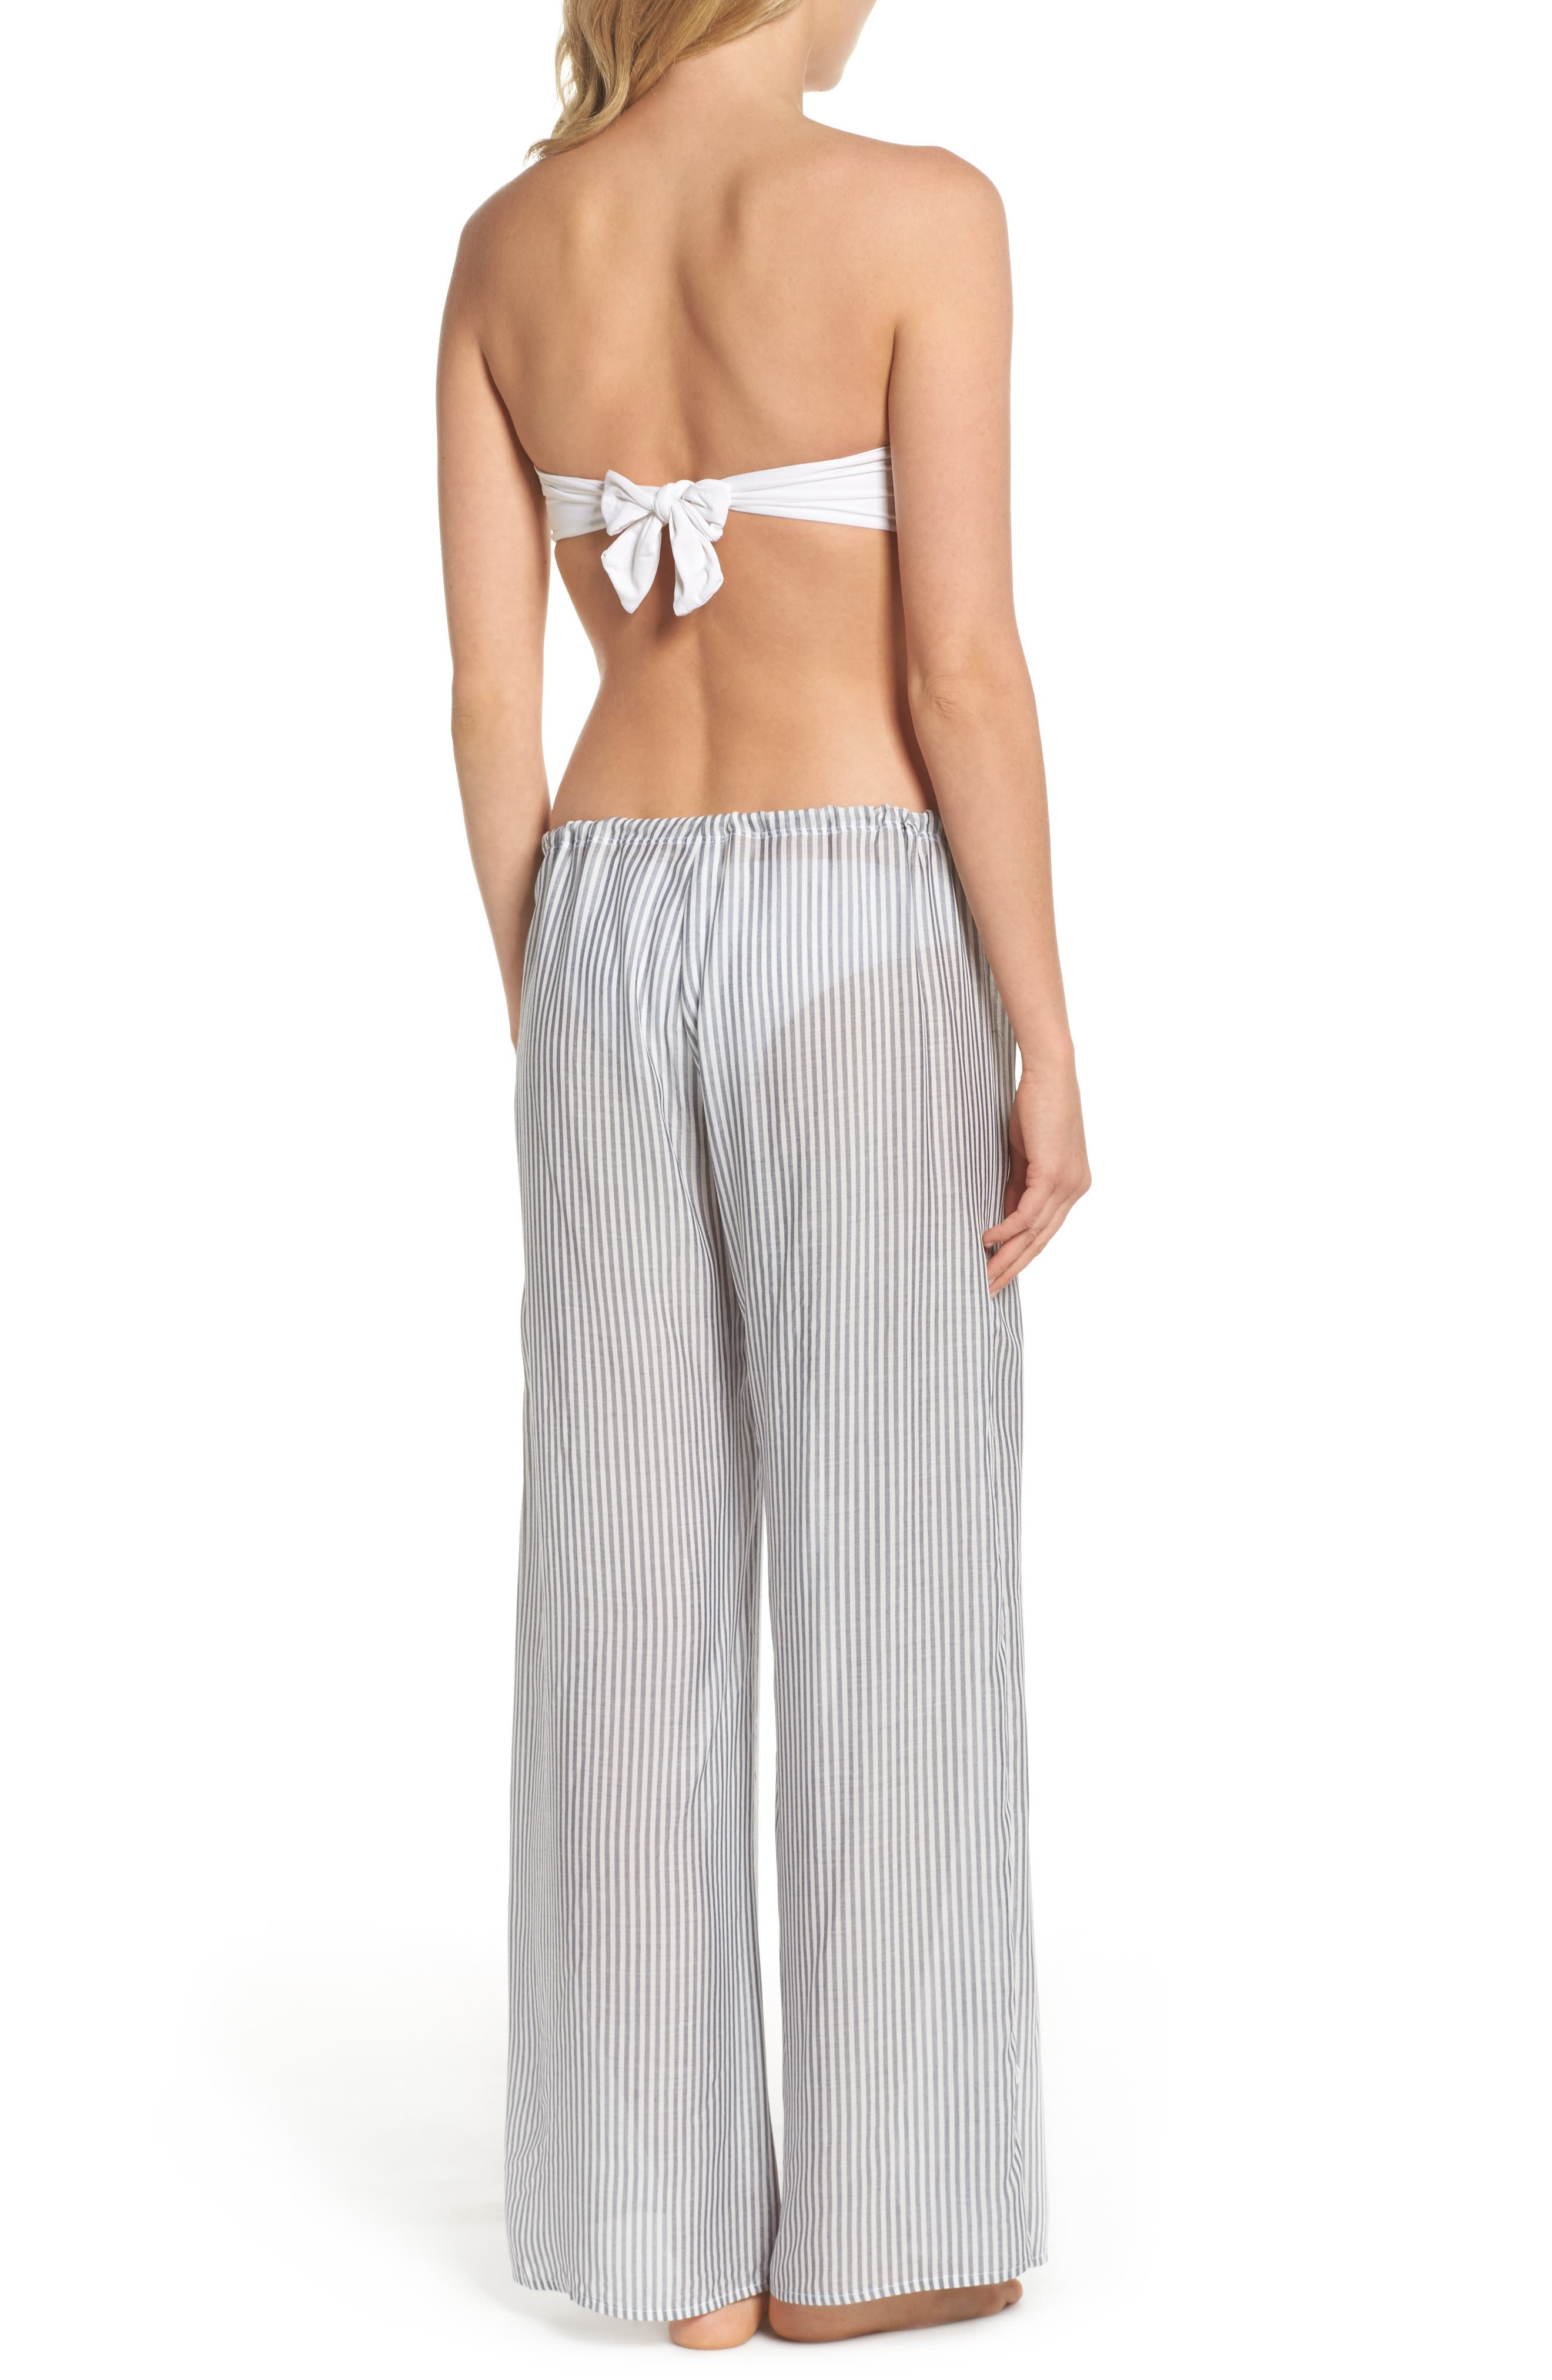 Nantucket Cover-Up Pants,                             Alternate thumbnail 2, color,                             488